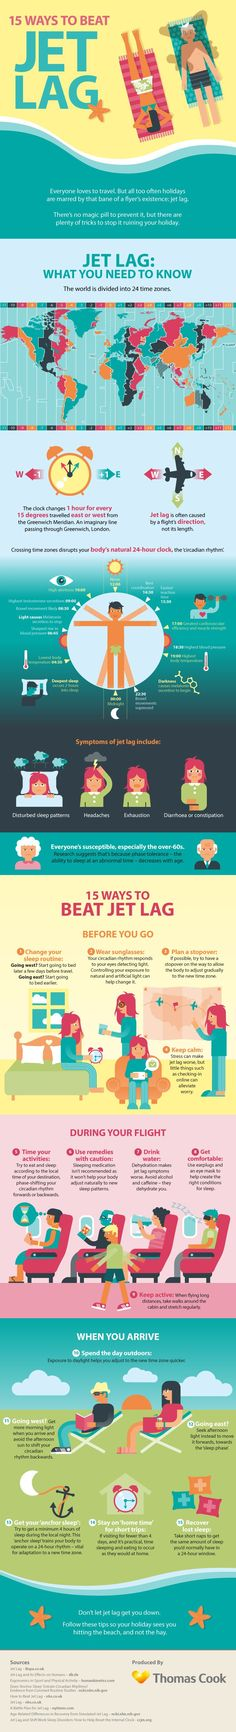 How to Beat Jet Lag by Thomas Cook via huffingtonpost #Infographic # Travel #Jet_Lag